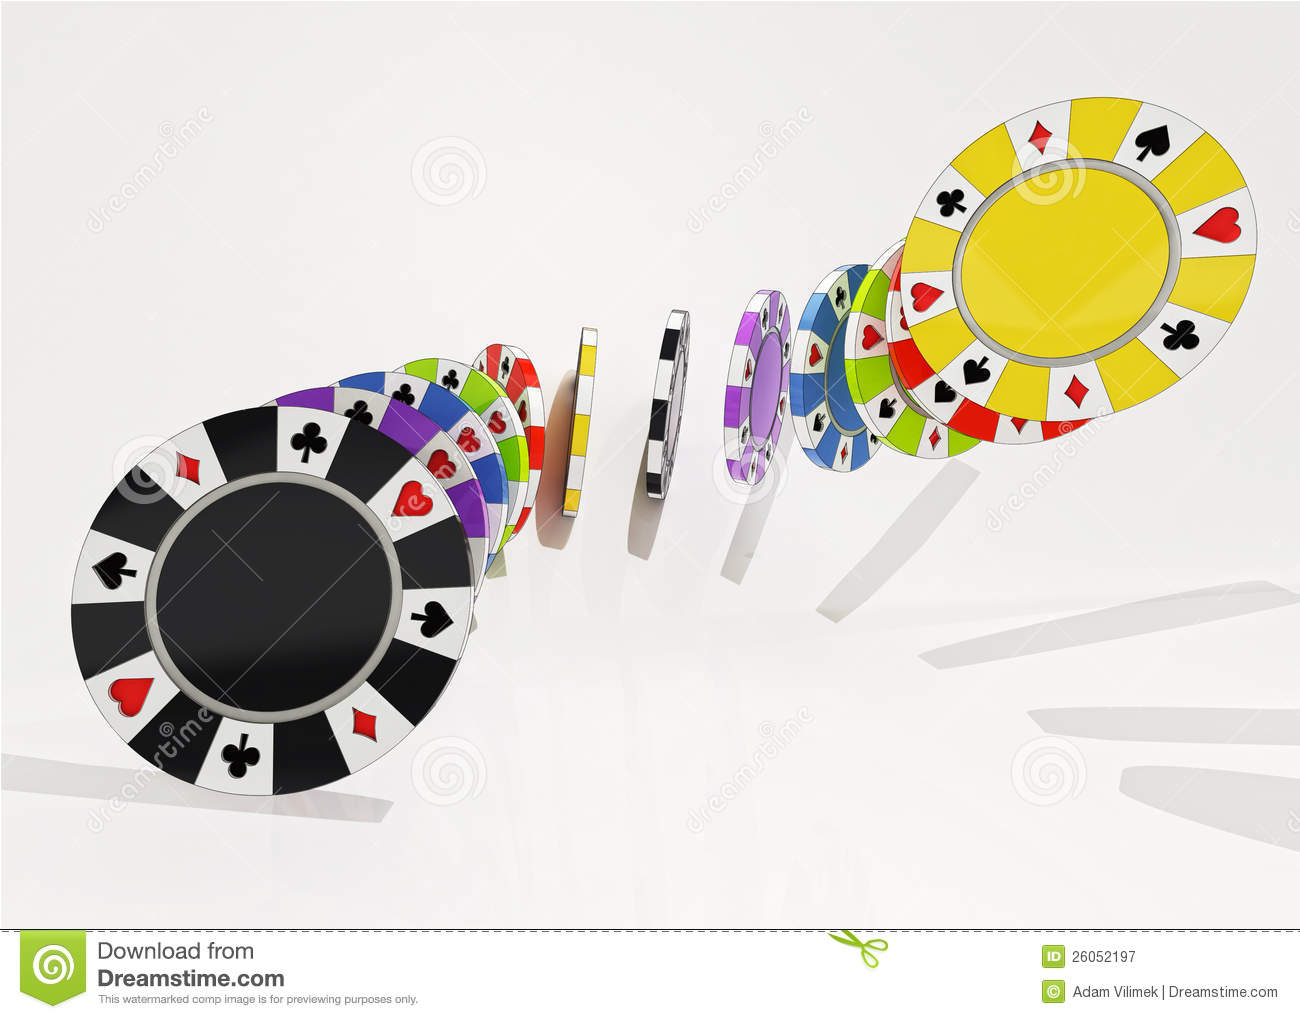 Different types of poker chips